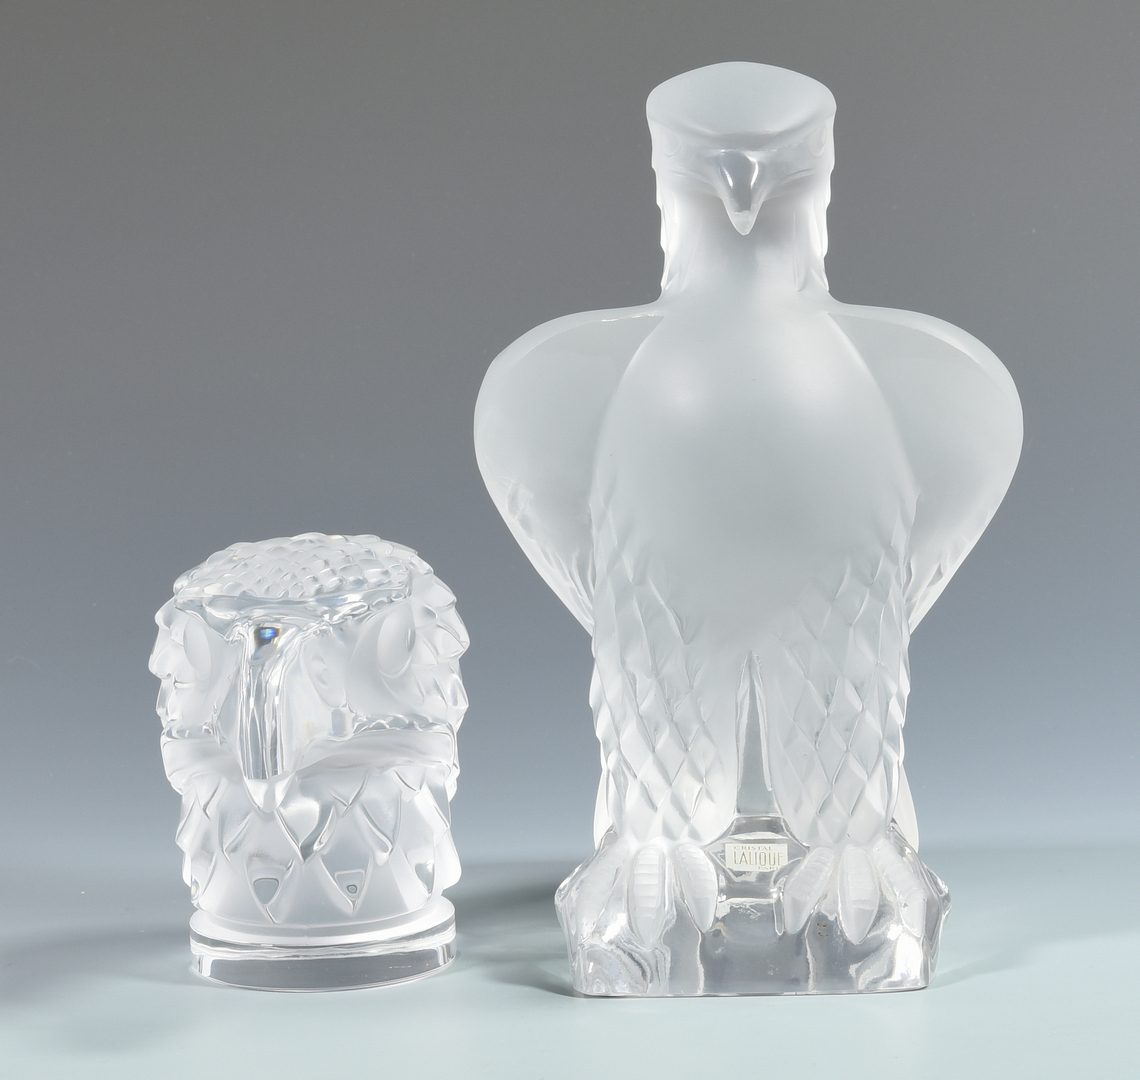 Lot 508: Lalique Glass Eagle Sculpture, Paperweight